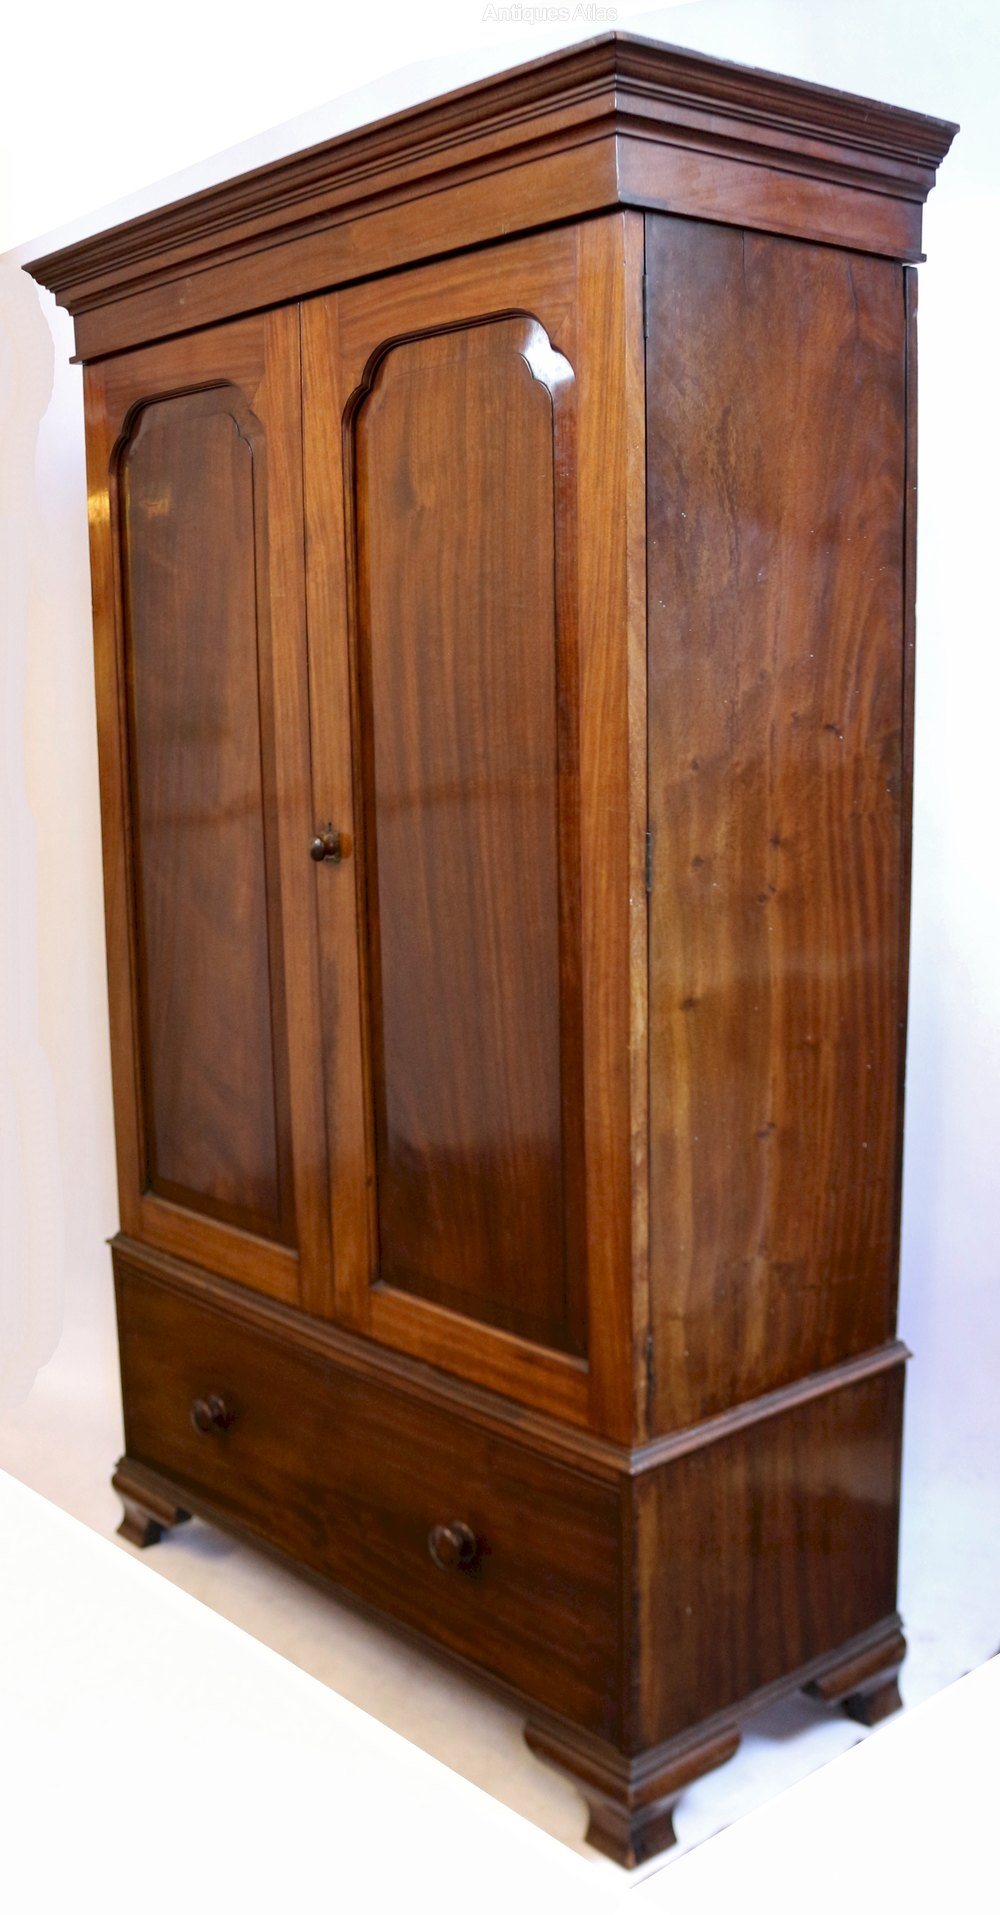 Edwardian Satinwood And Birdseye Maple Wardrobe Edwardian (1901-1910) Antique Furniture